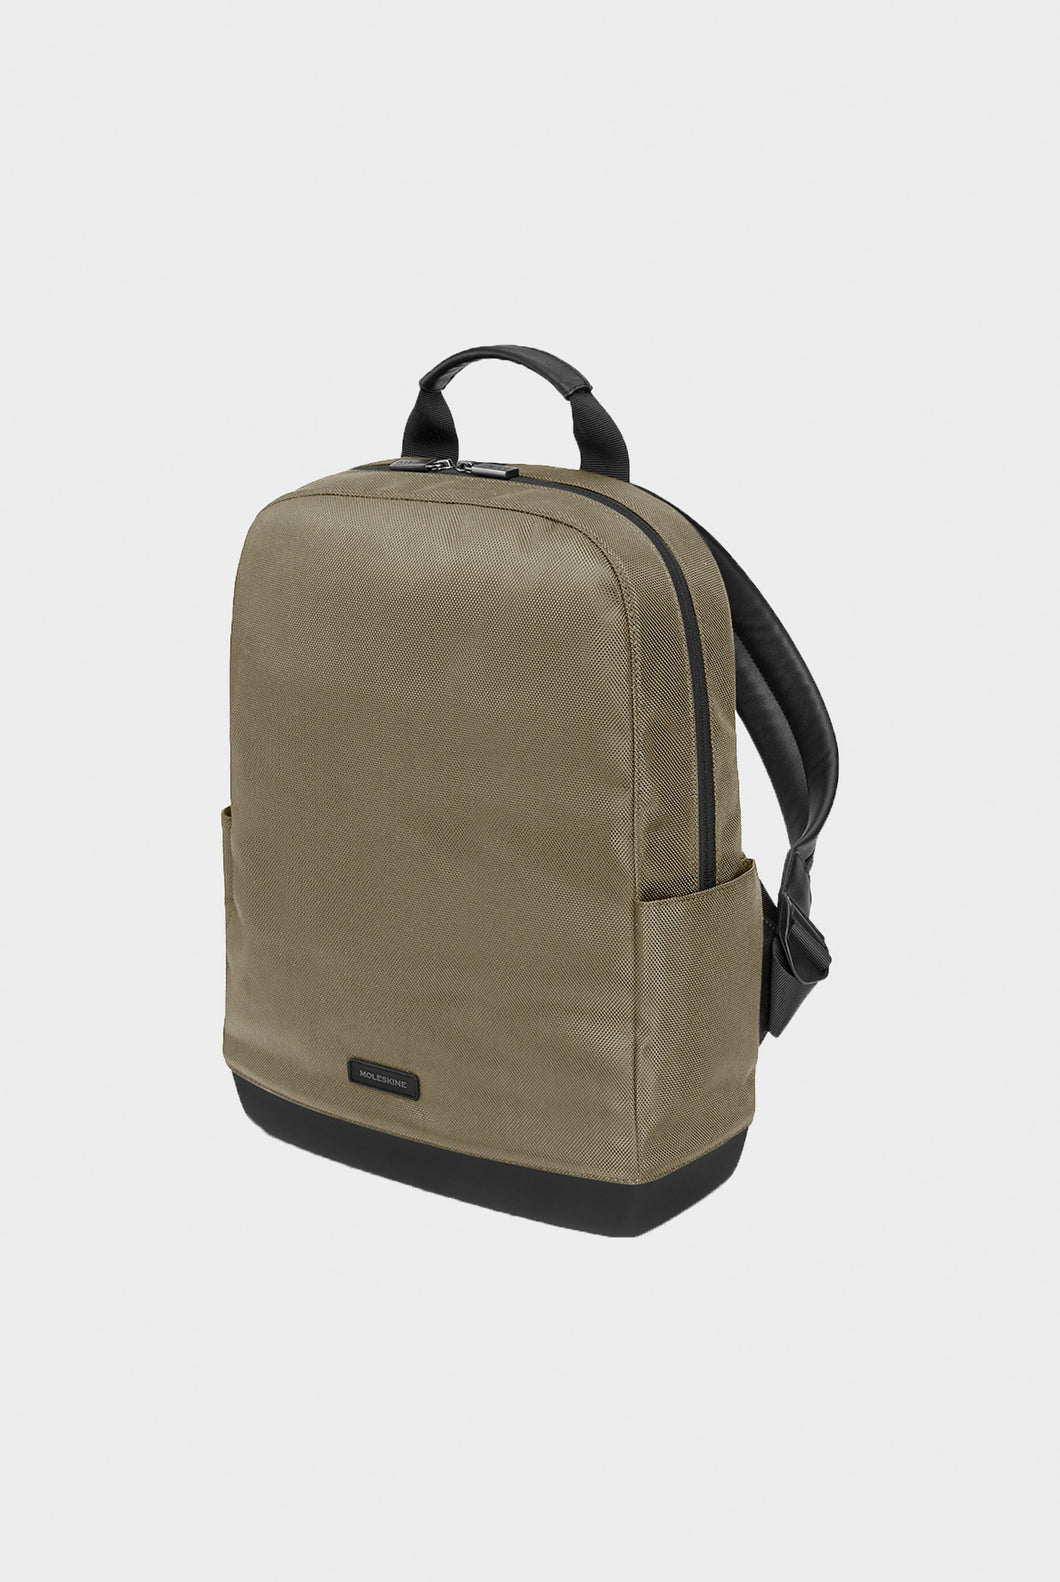 Moleskine - The Backpack Technical Wave - Juniper Green